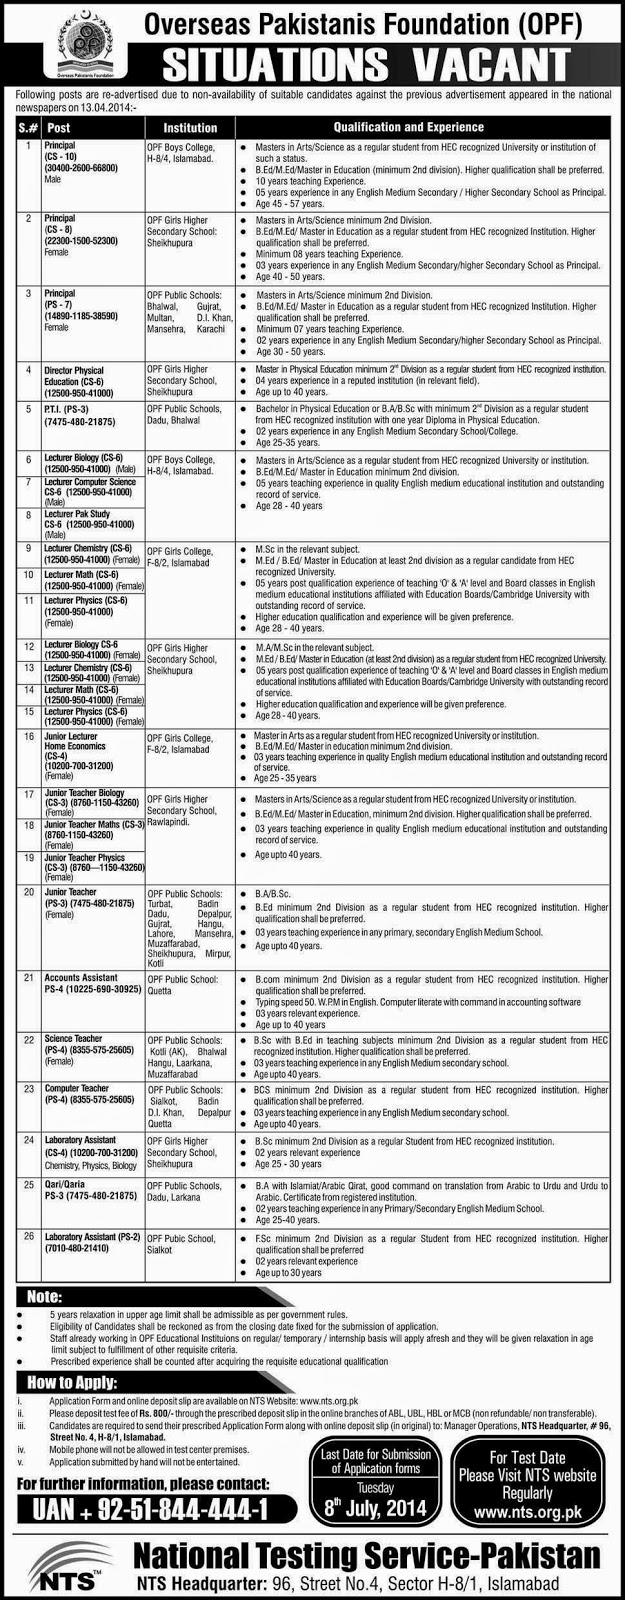 Teacher, Lecturer, Principal and Laboratory Assistant Jobs in Overseas Pakistani Foundation, Islamabad